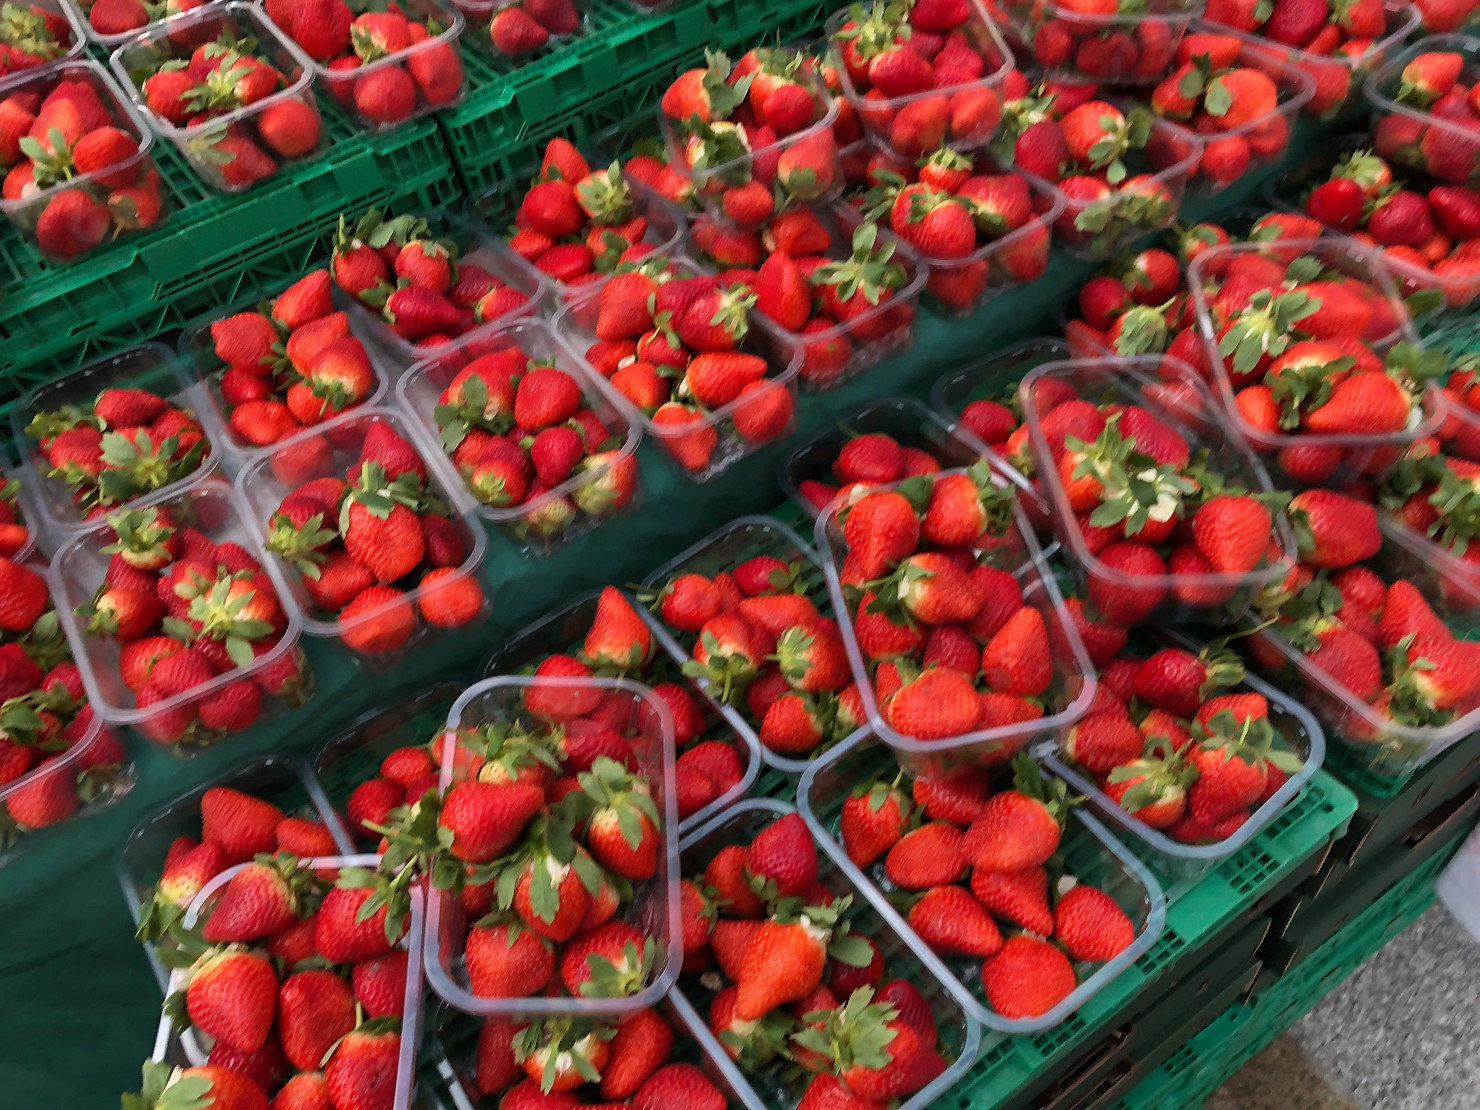 Strawberries on Market day